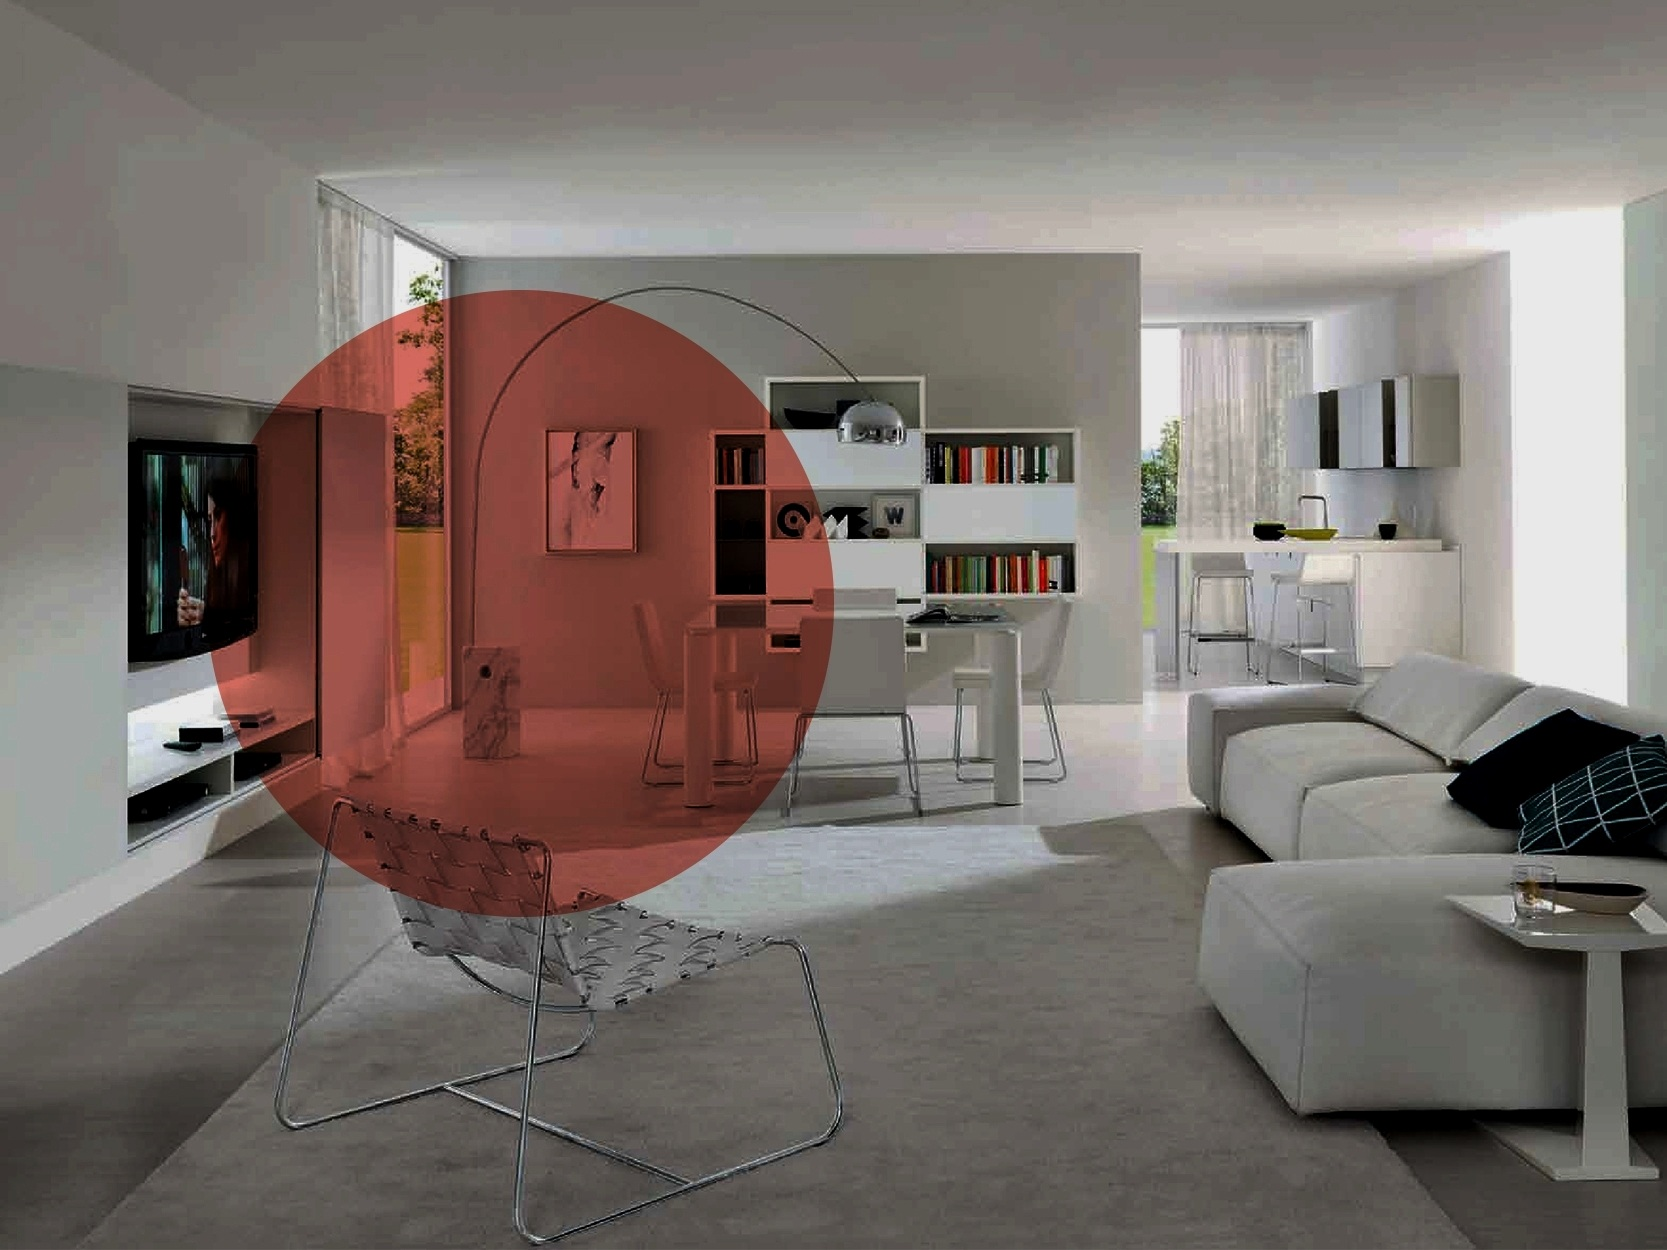 WHERE CHOICE OF SHAPE, SIZE, FINISHES CATER TO BESPOKEN FURNITURE DESIGNS